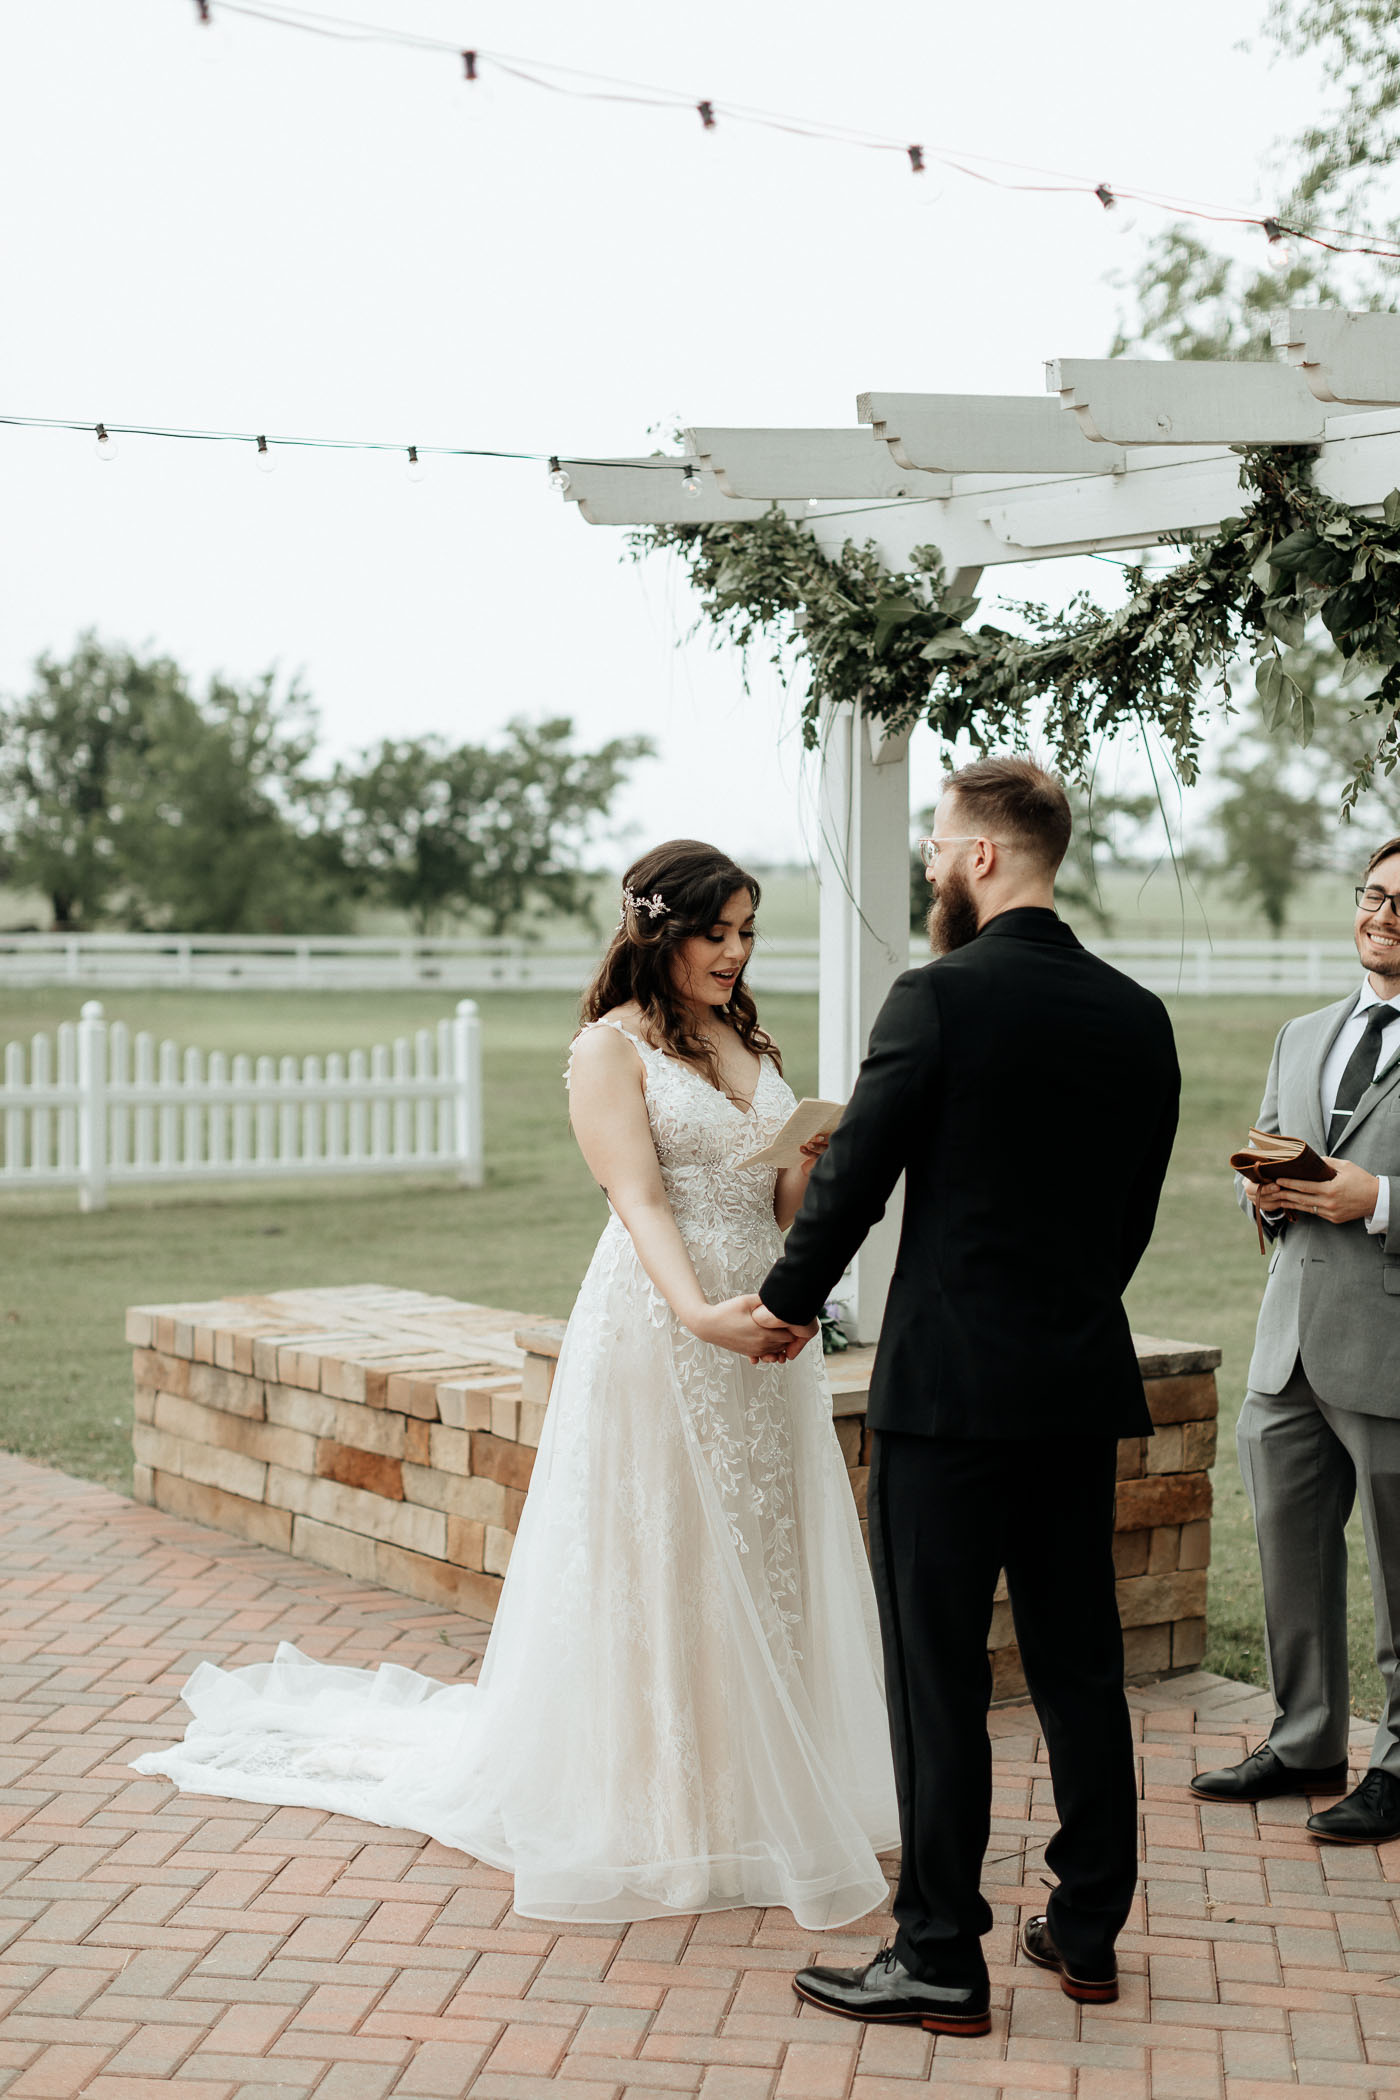 Bride and groom exchanging wedding vows in DFW